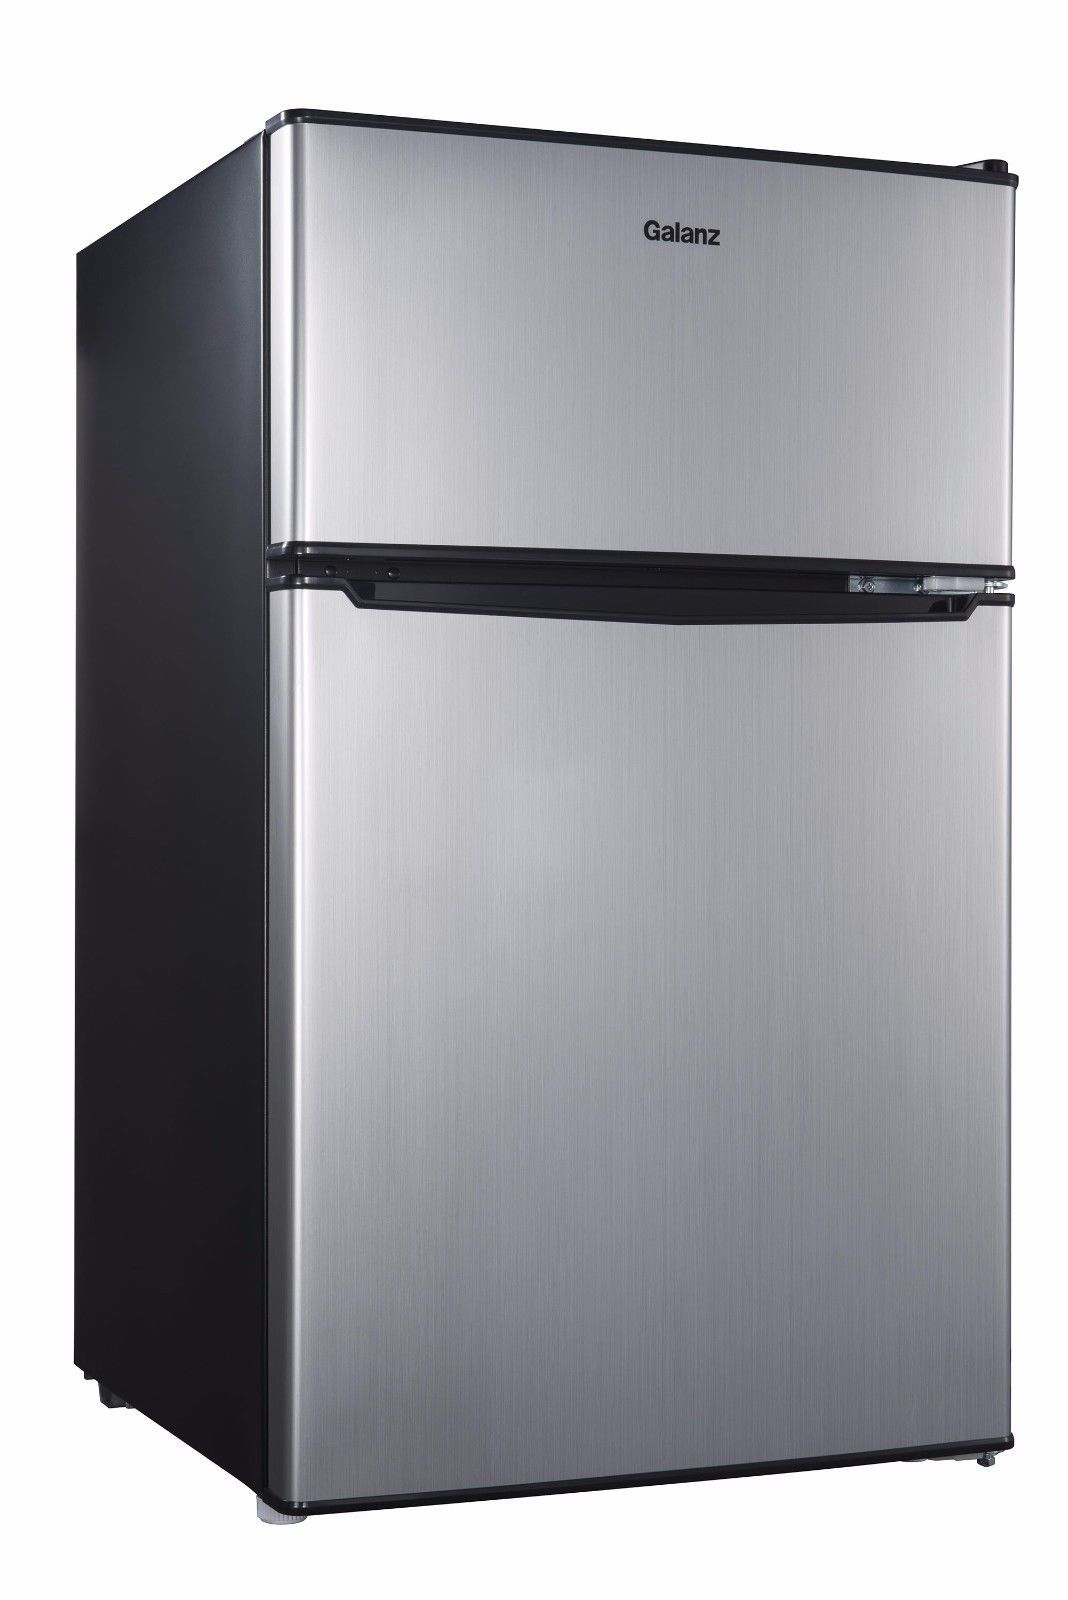 Mini Fridges 71262 Galanz 3 1 Cu Ft Compact Refrigerator Stainless Steel Brand New Buy It Now On Refrigerator Freezer True Freezer Compact Refrigerator